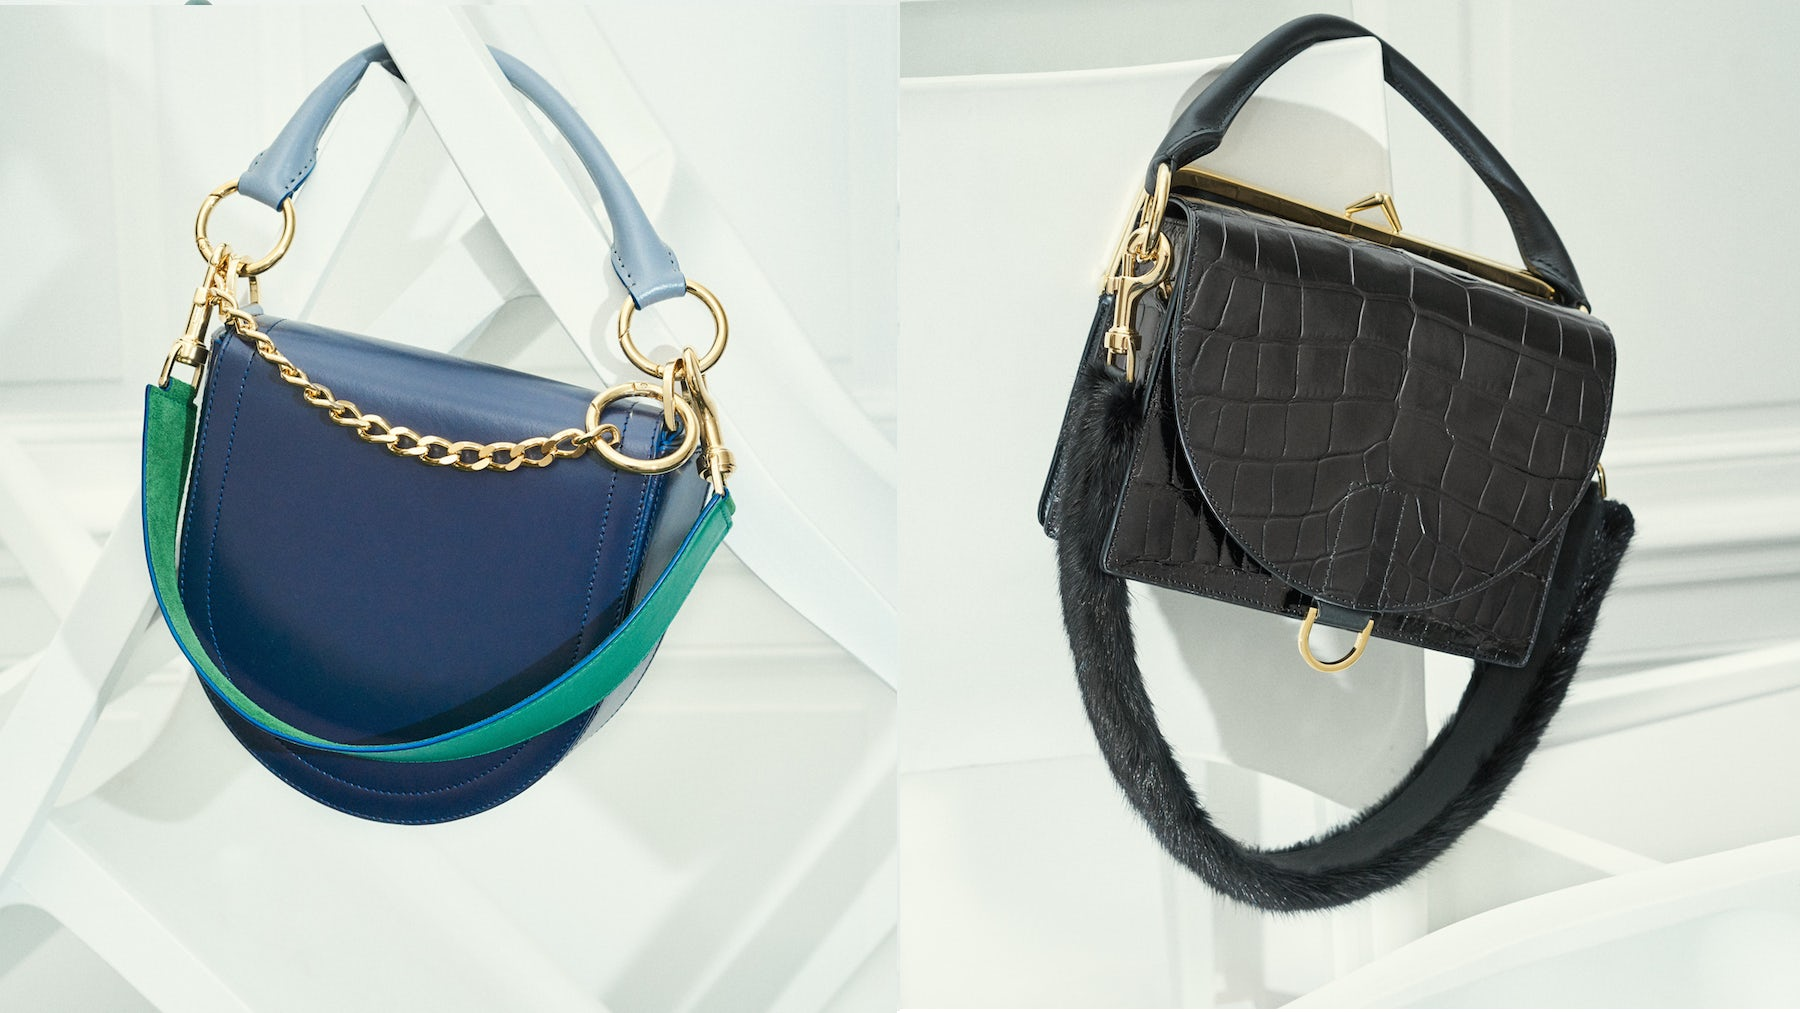 acai has launched its first handbag collection | Source: Courtesy